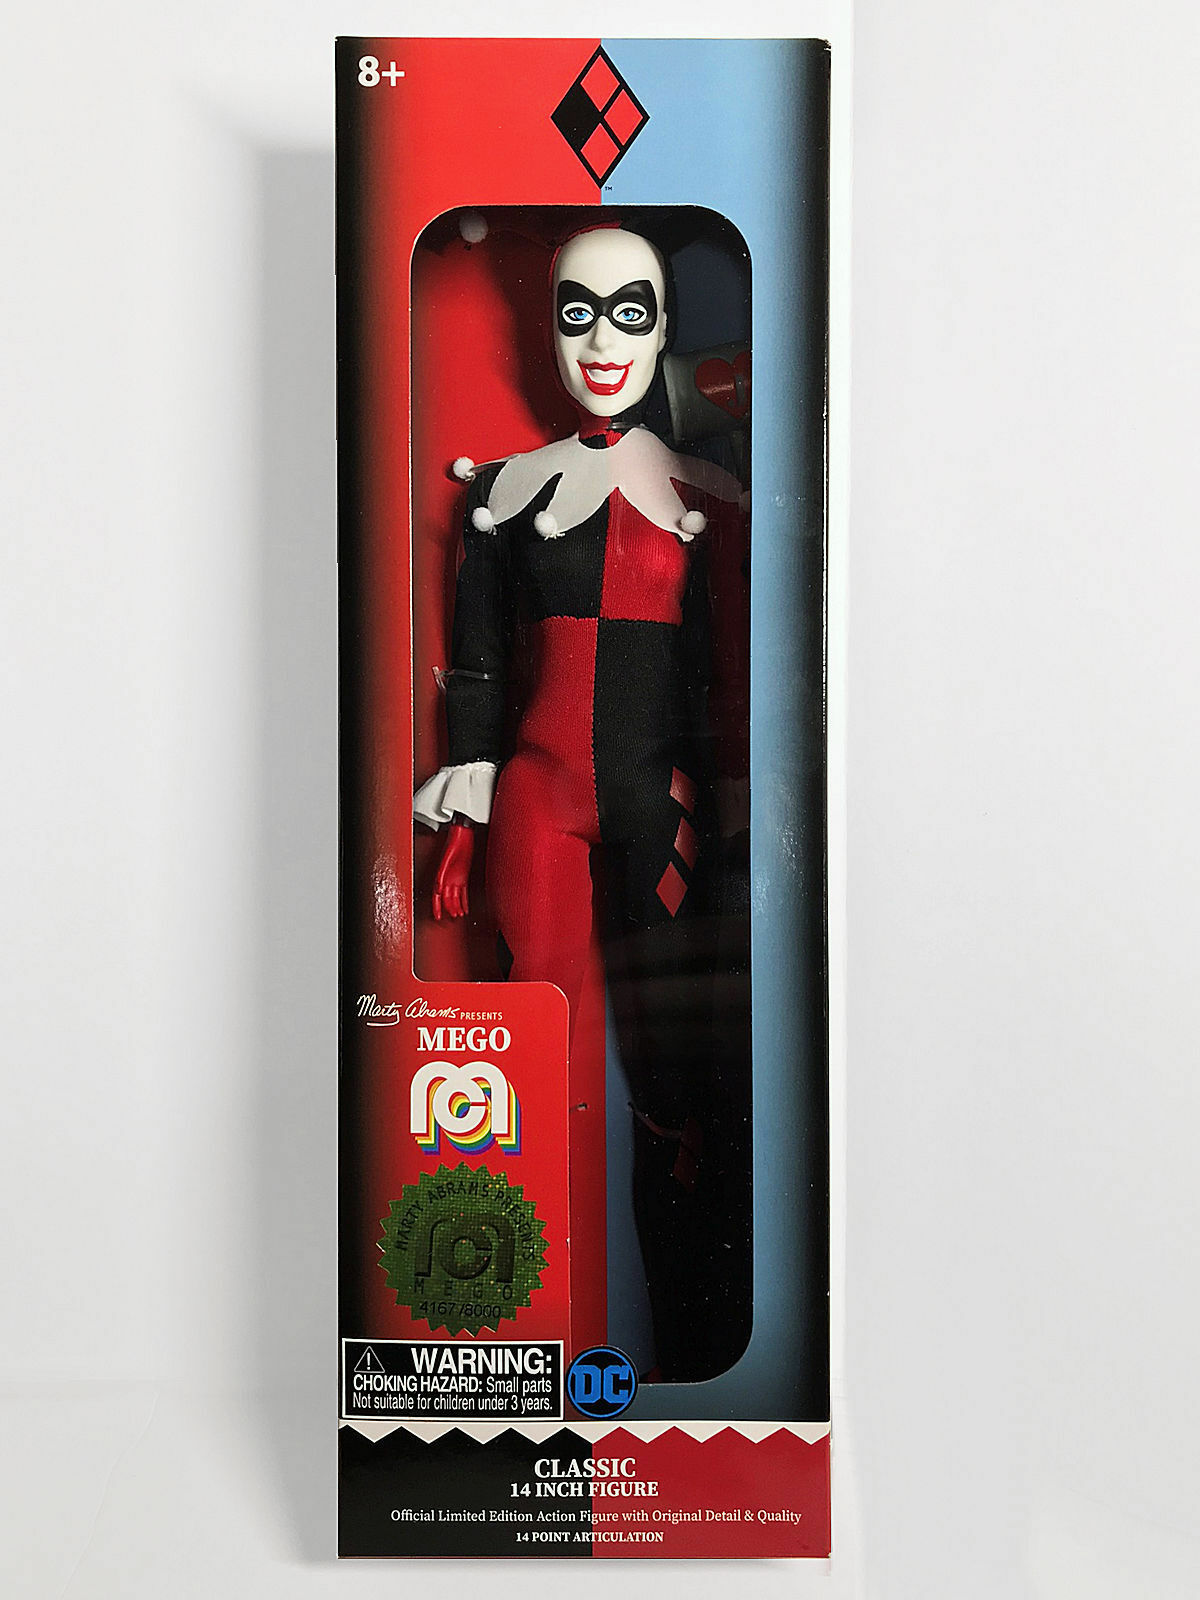 Mego Limited Edition Harley Quinn Classic Action Figure 14-inch 4167 8000